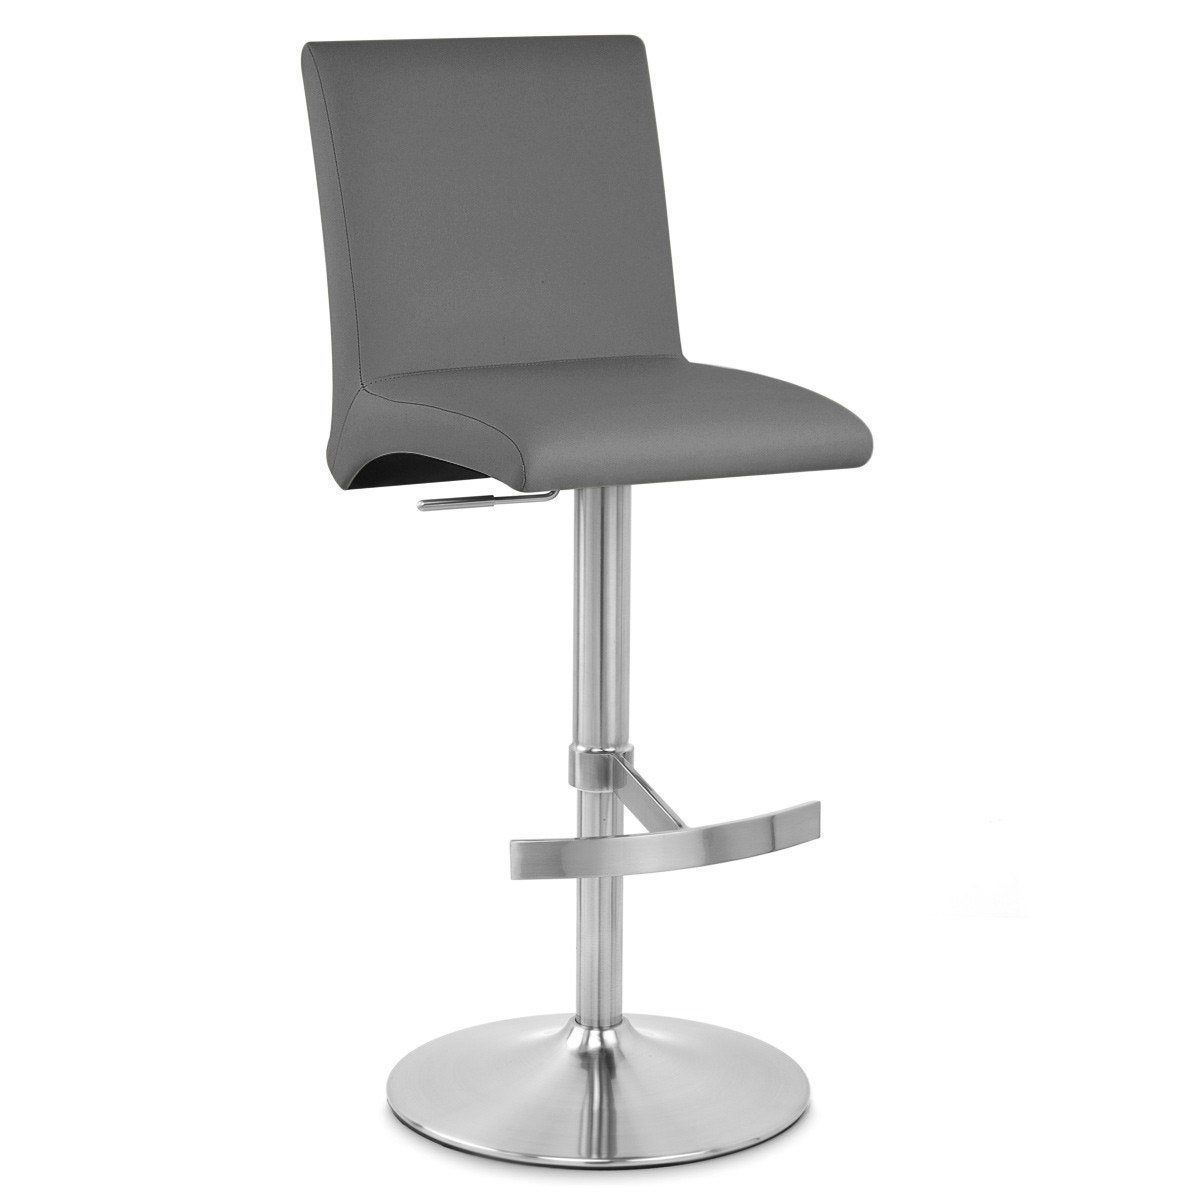 Tabouret de bar design, simili cuir, gris, Deluxe high back